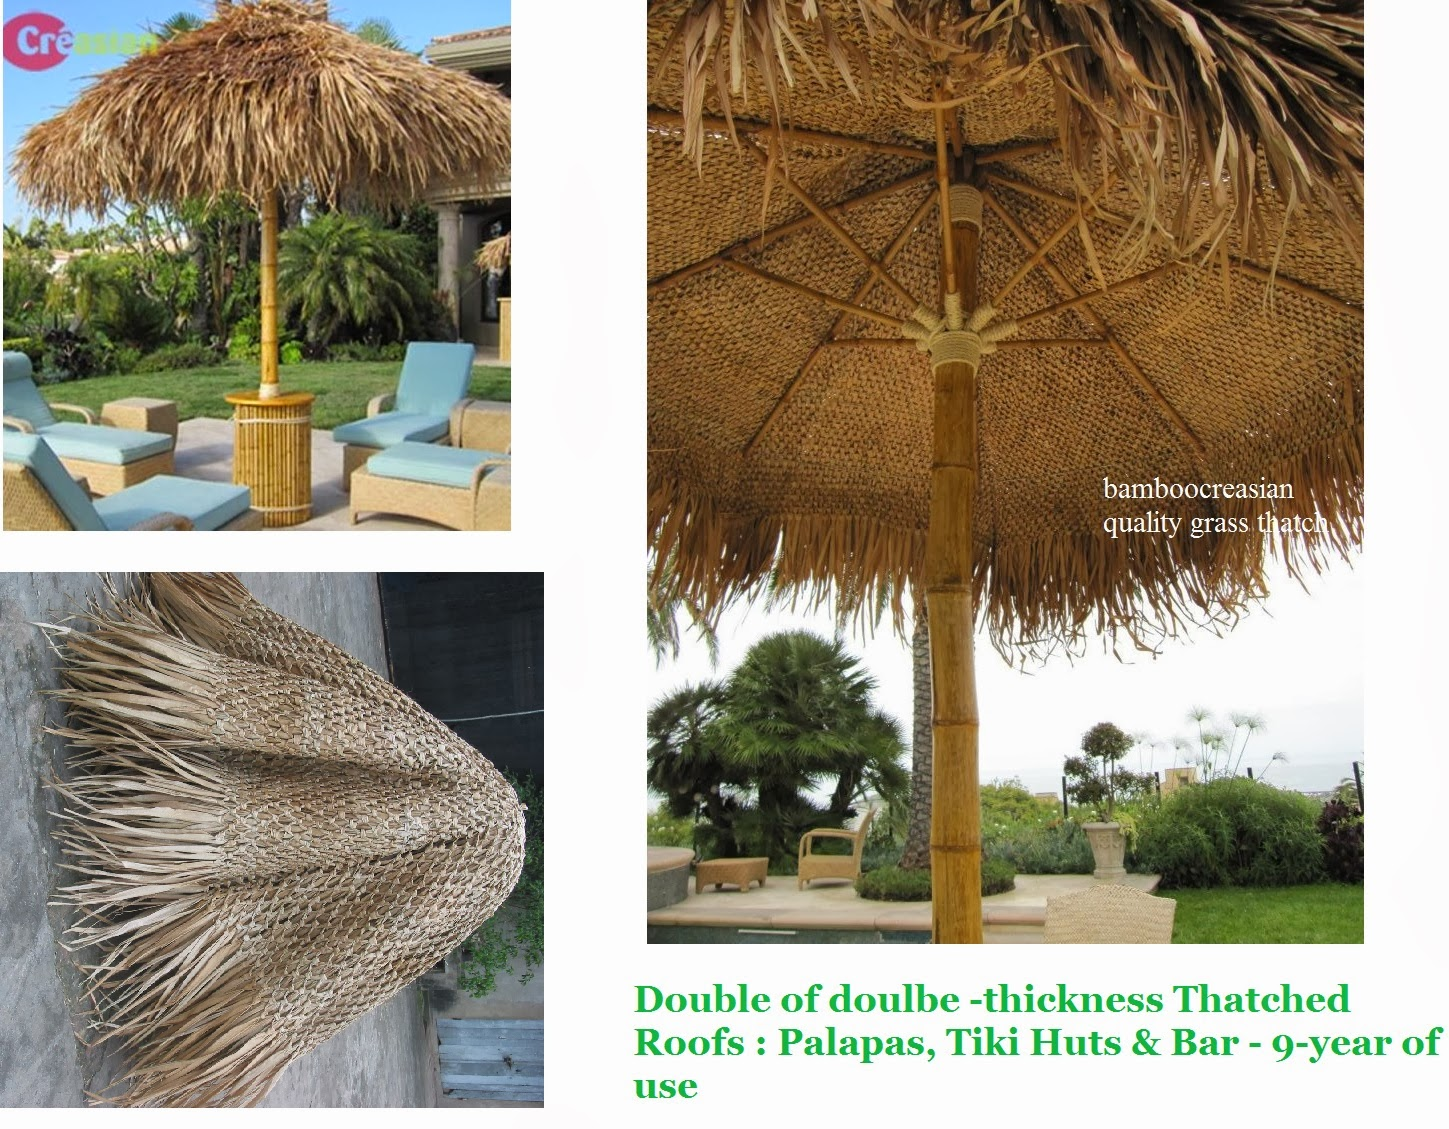 9 Year Of Thatched Use 2 1 X 30 Ft Panels 20 Dia Palm S Palapa Umbrella Bbq Luau Commercial A Pre Woven By Best Thatch For